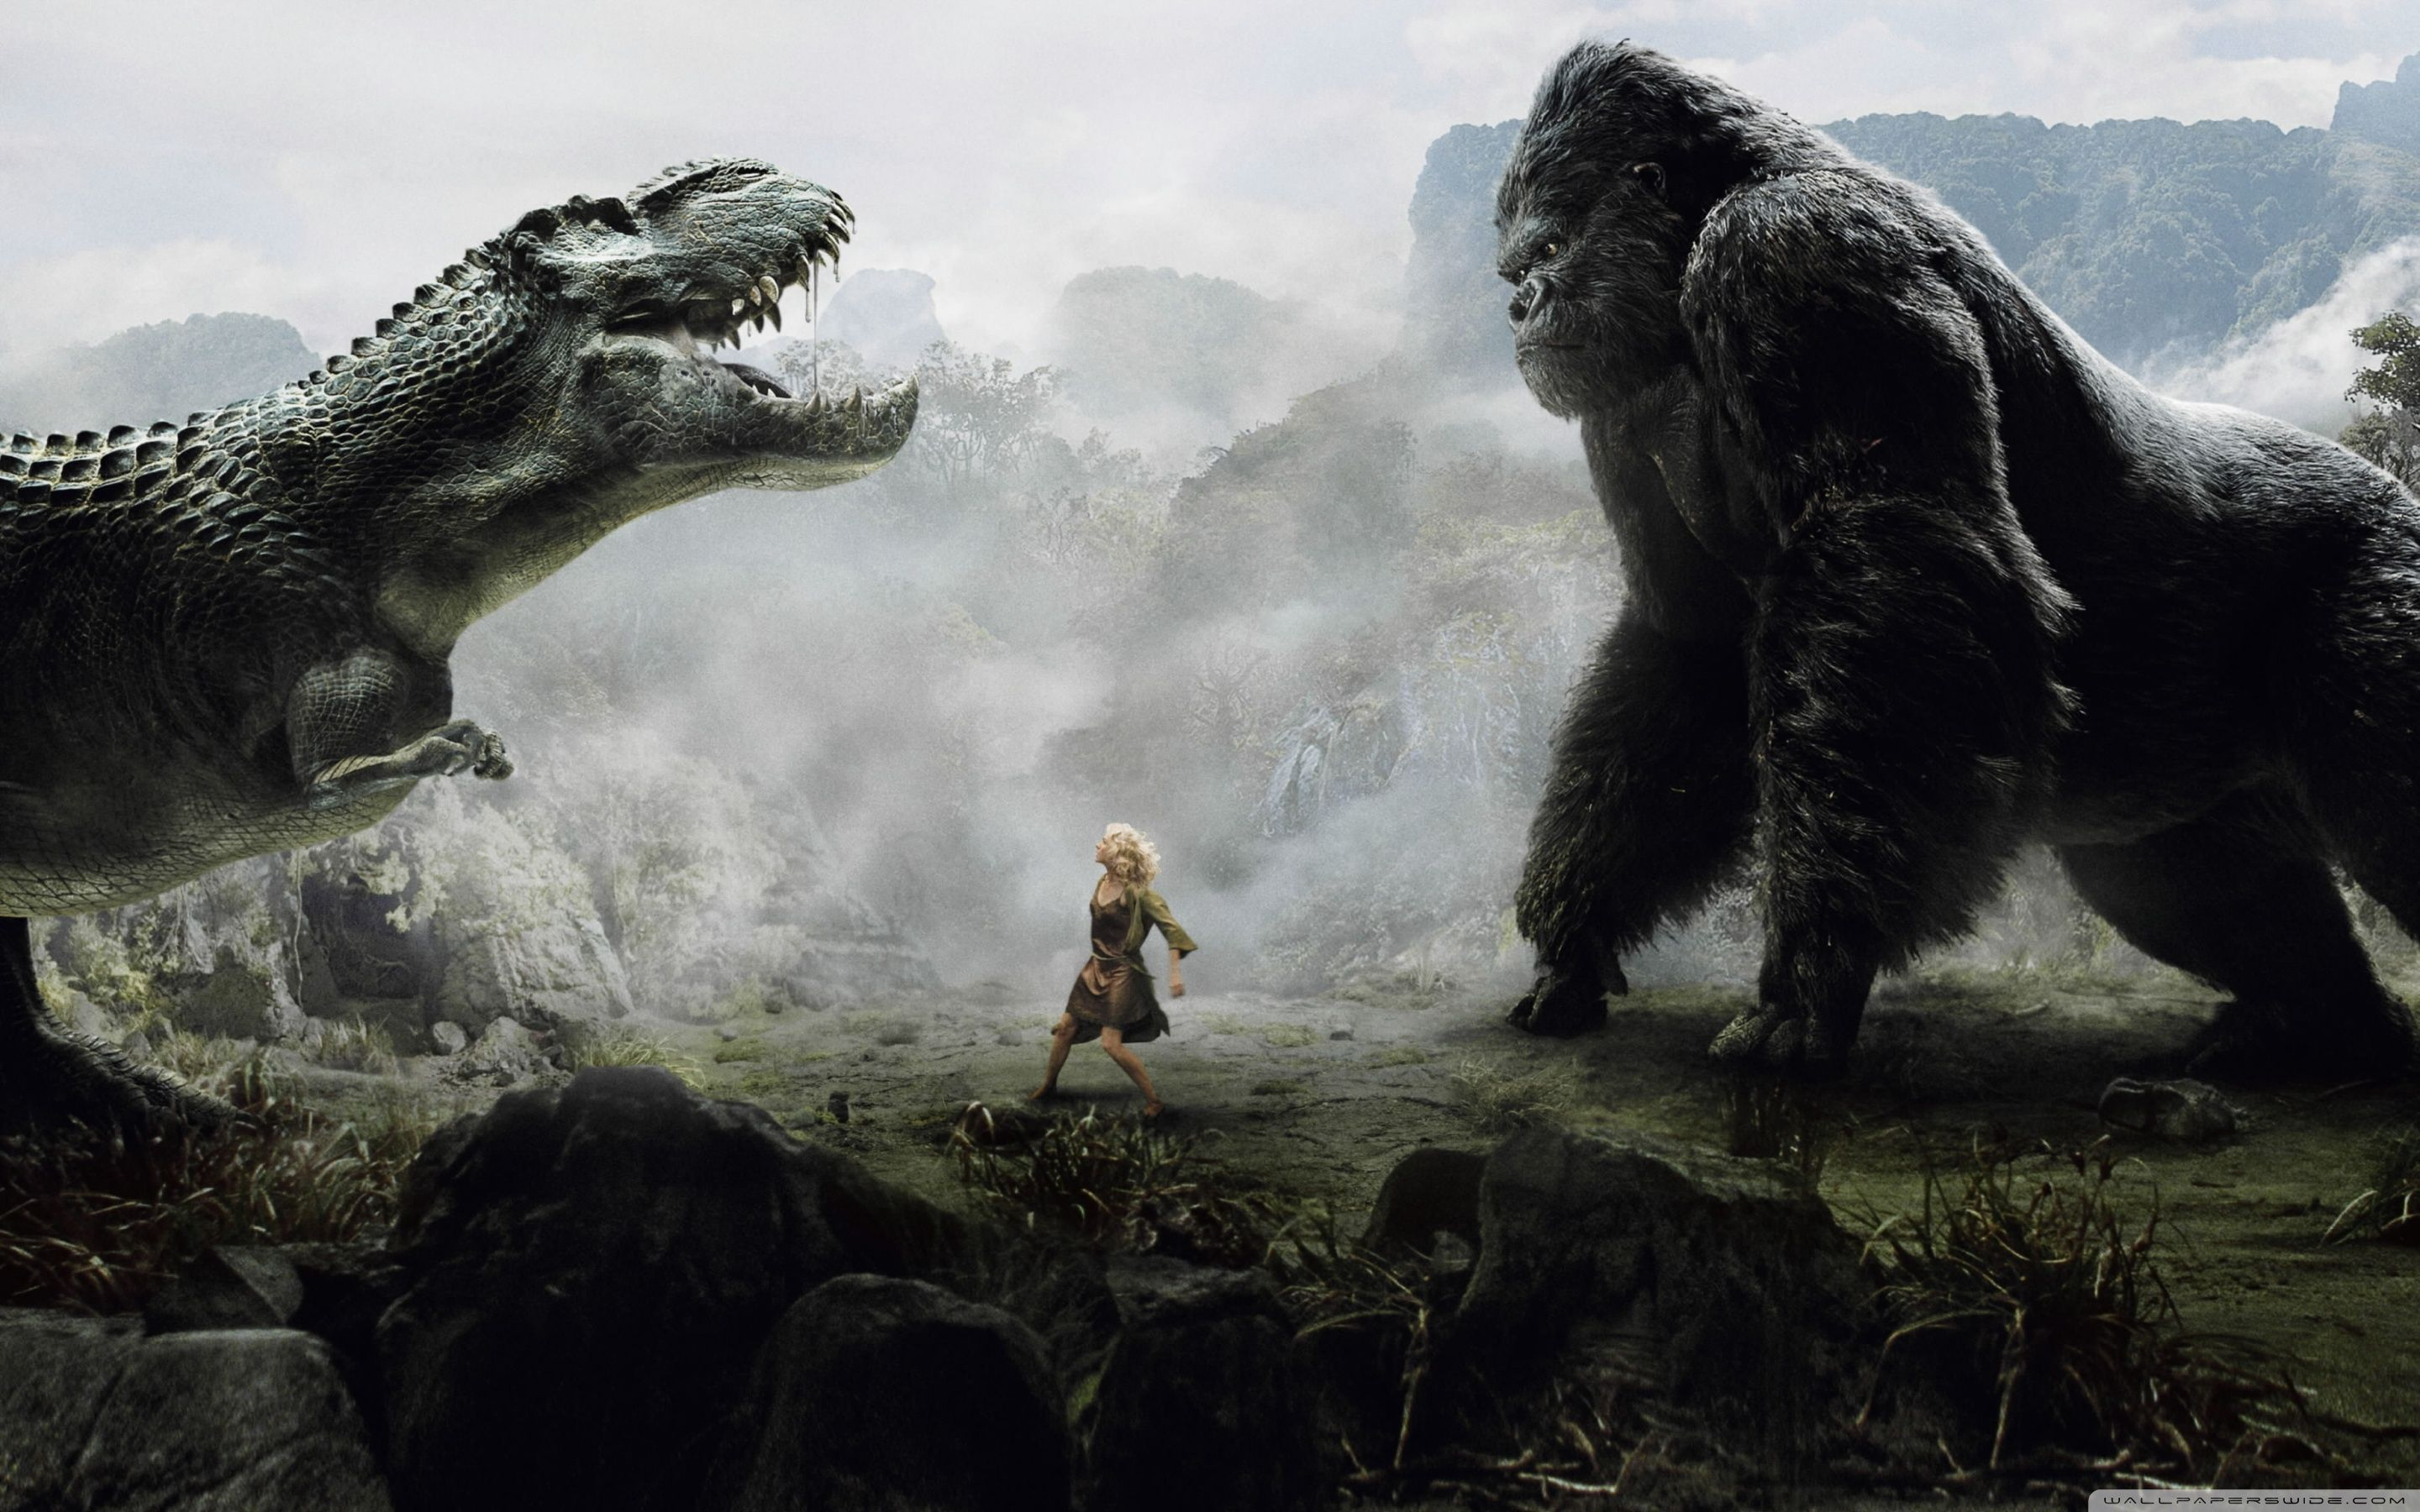 Godzilla Vs King Kong Full Movie Free